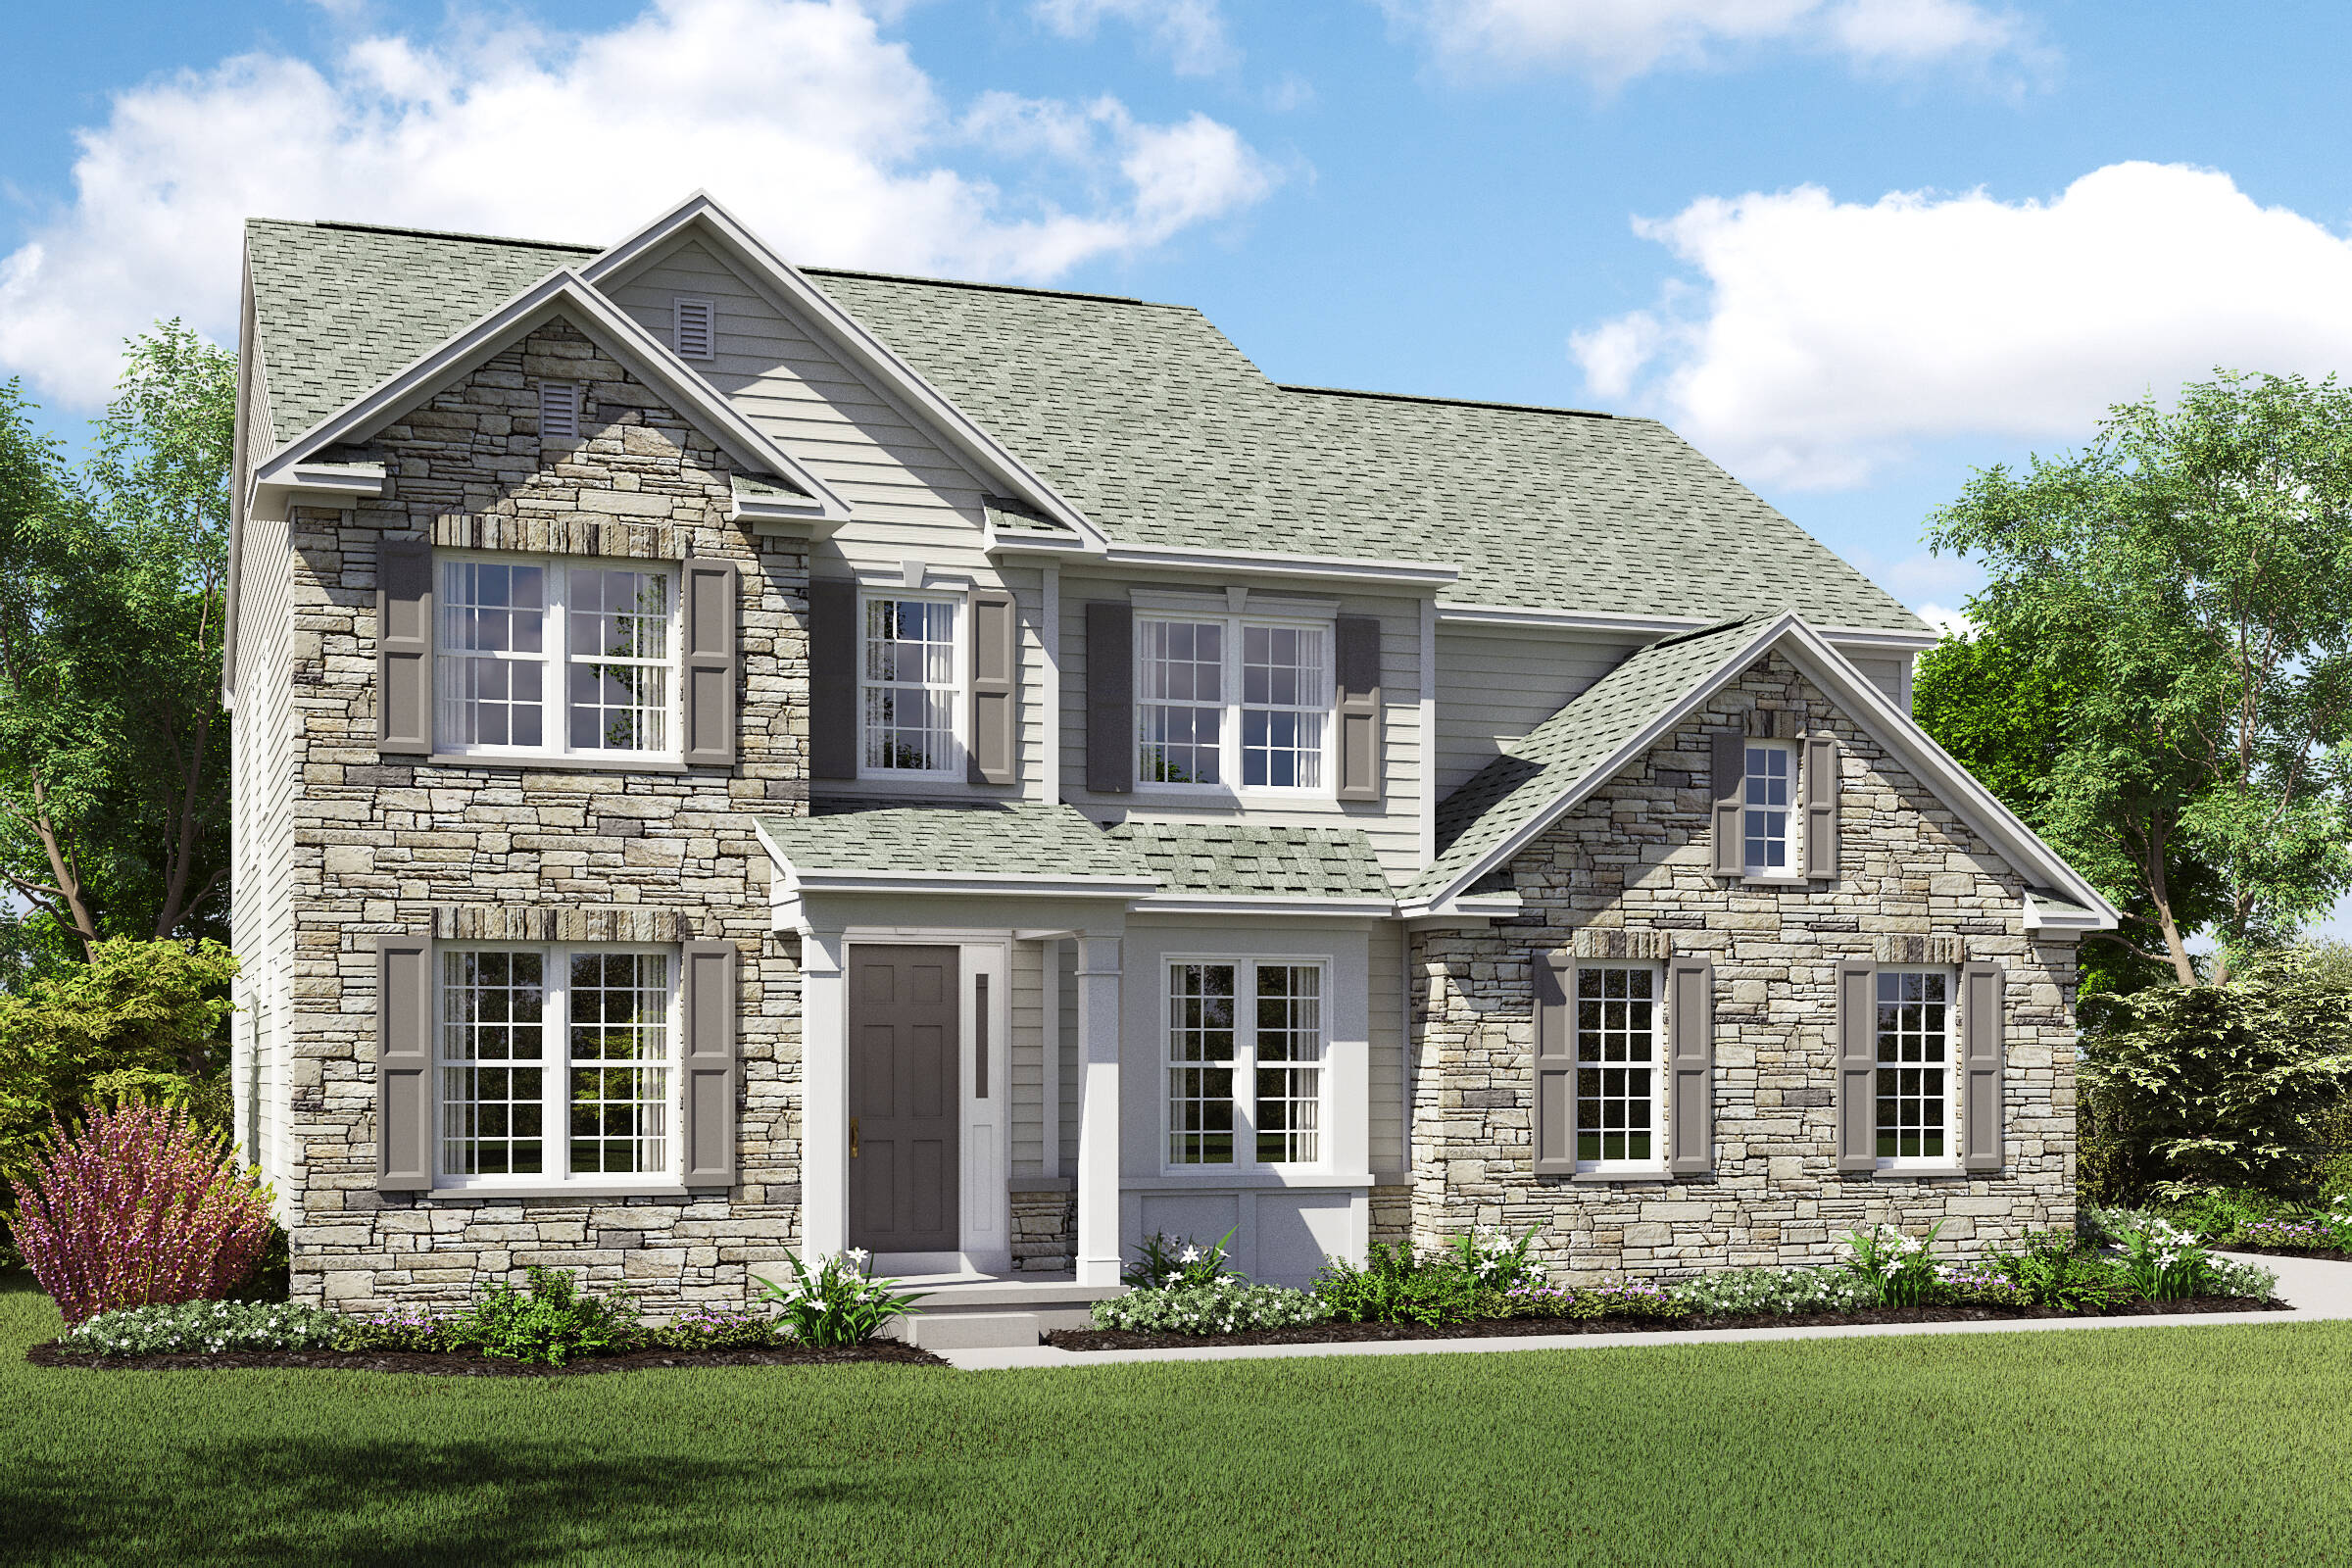 Beaumont G2T SL k hovnanian new homes cleveland